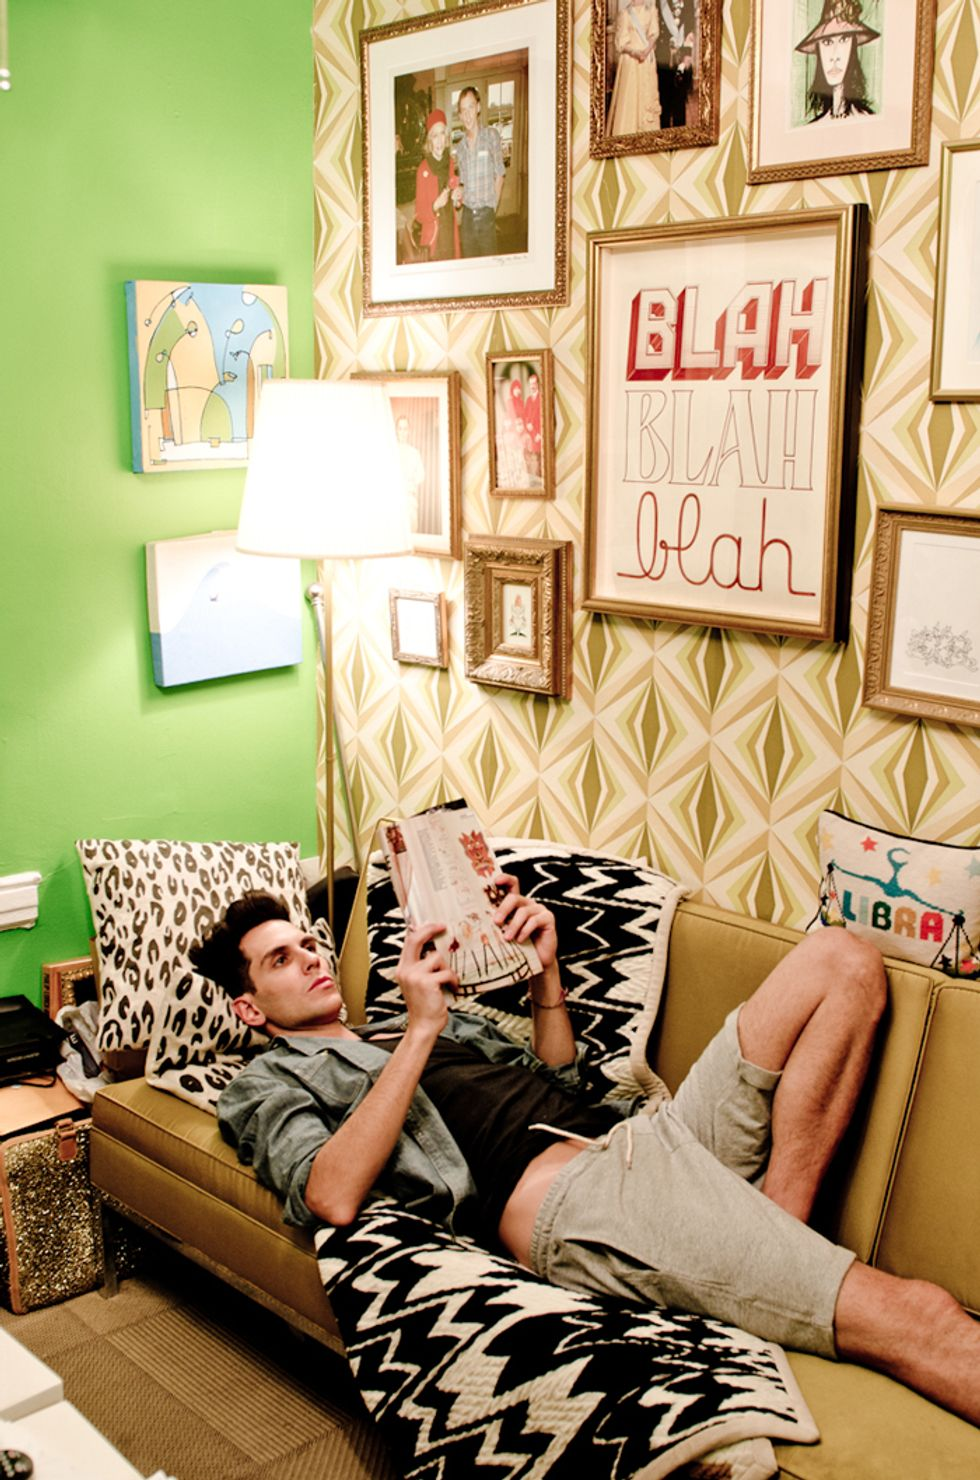 Spring Cleaning Chic with Gabe Saporta